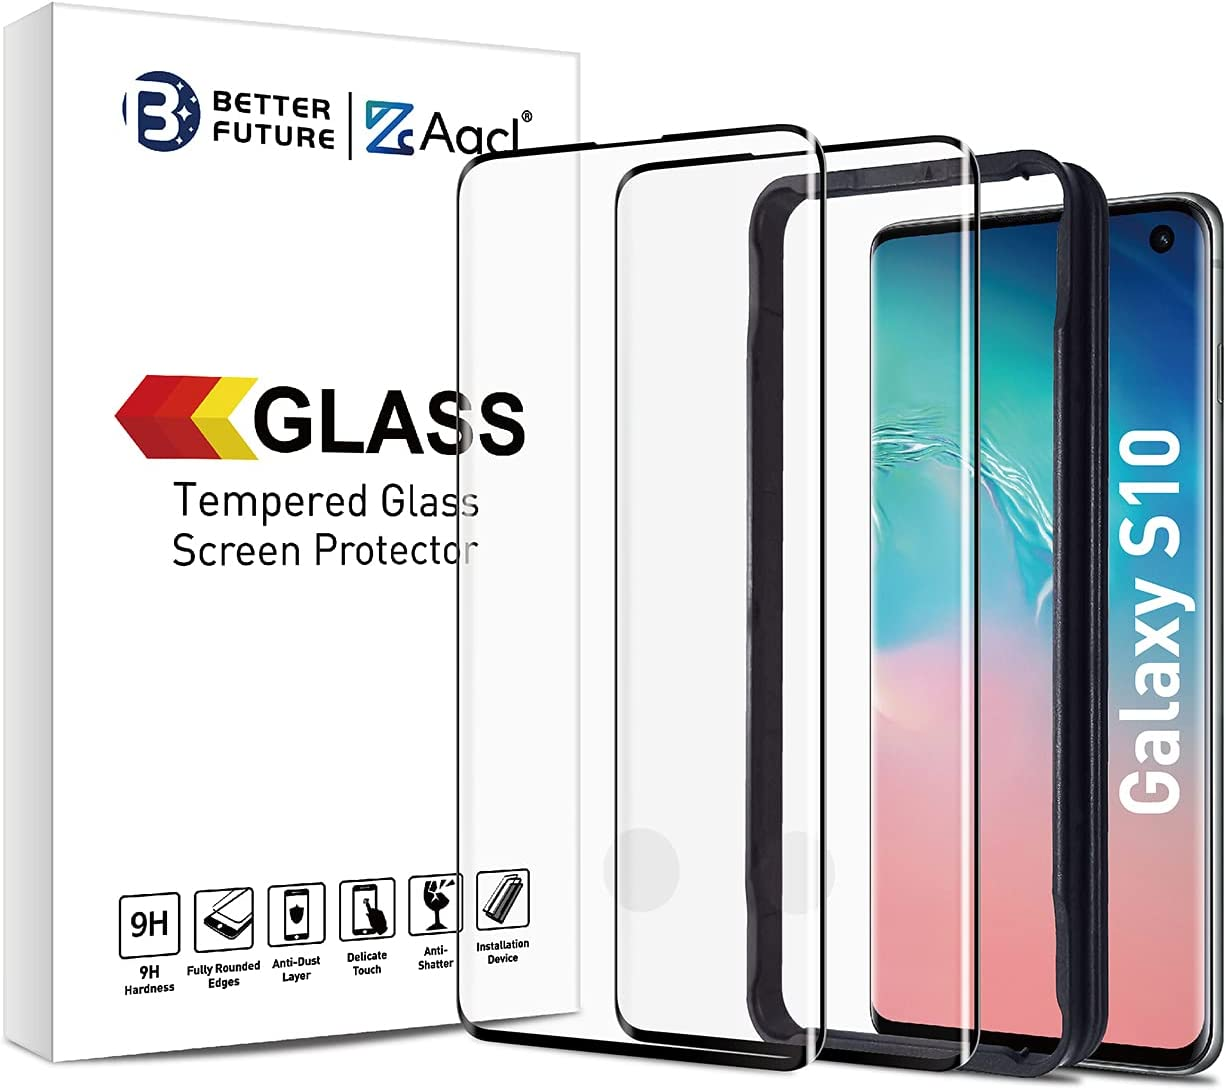 Glass Screen Protector for Samsung Galaxy S10,6.1-Inch,2 Pack,Curved Tempered Glass,Compatible with Ultrasonic Fingerprint Scanner,Black